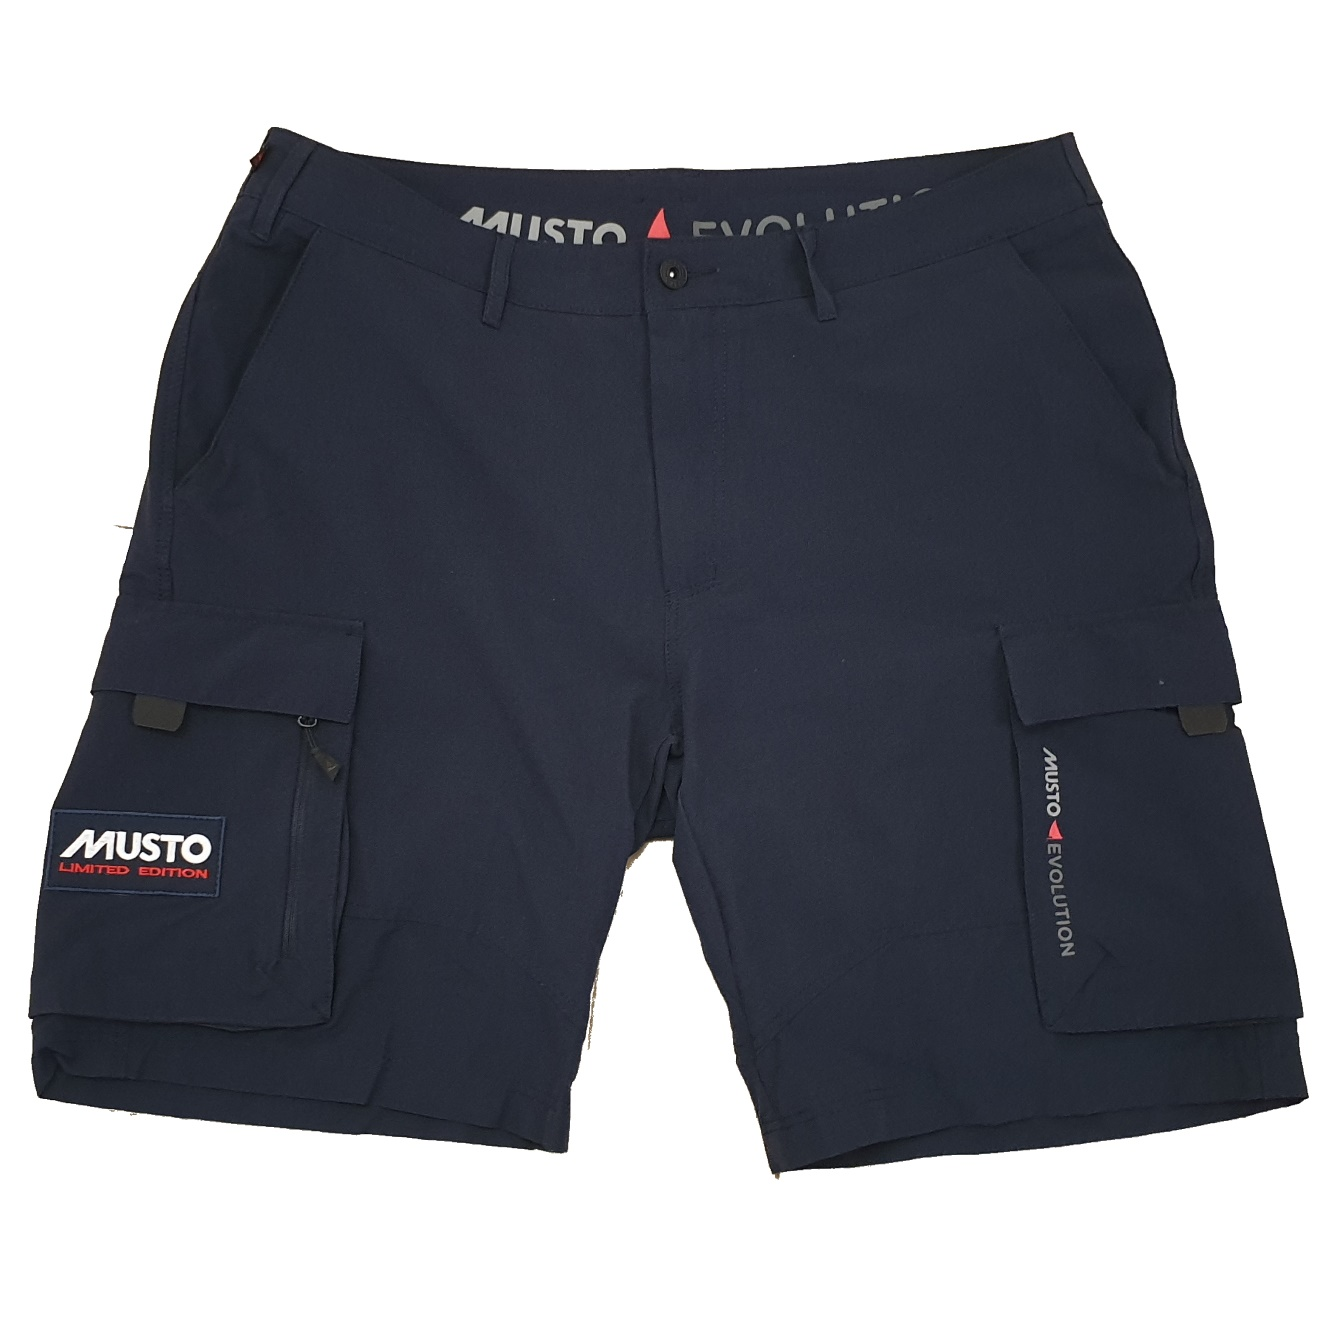 MUSTO DECK UV FD SHORT LIMITED EDITION